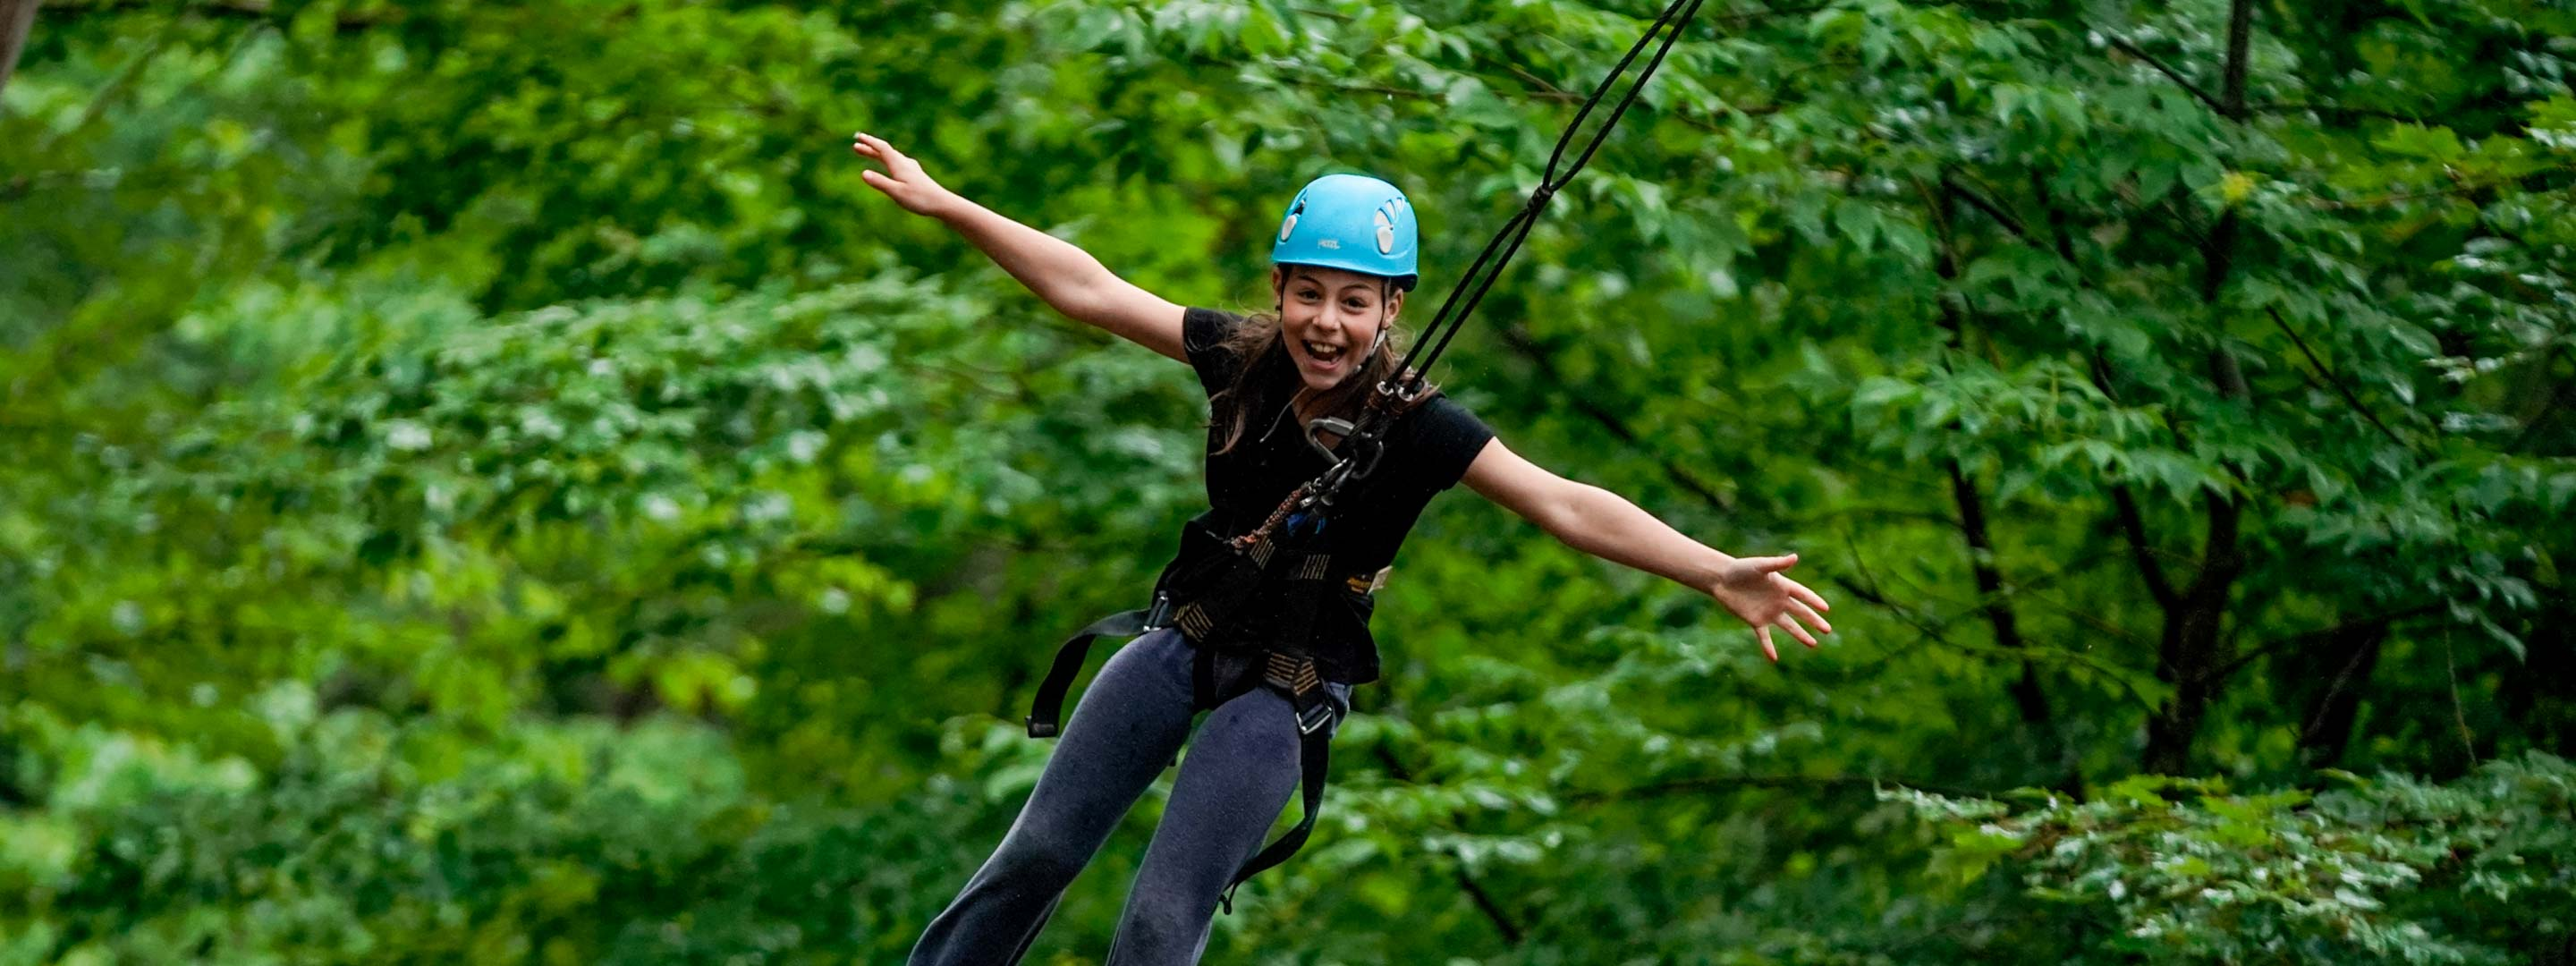 girl smiling while ziplining